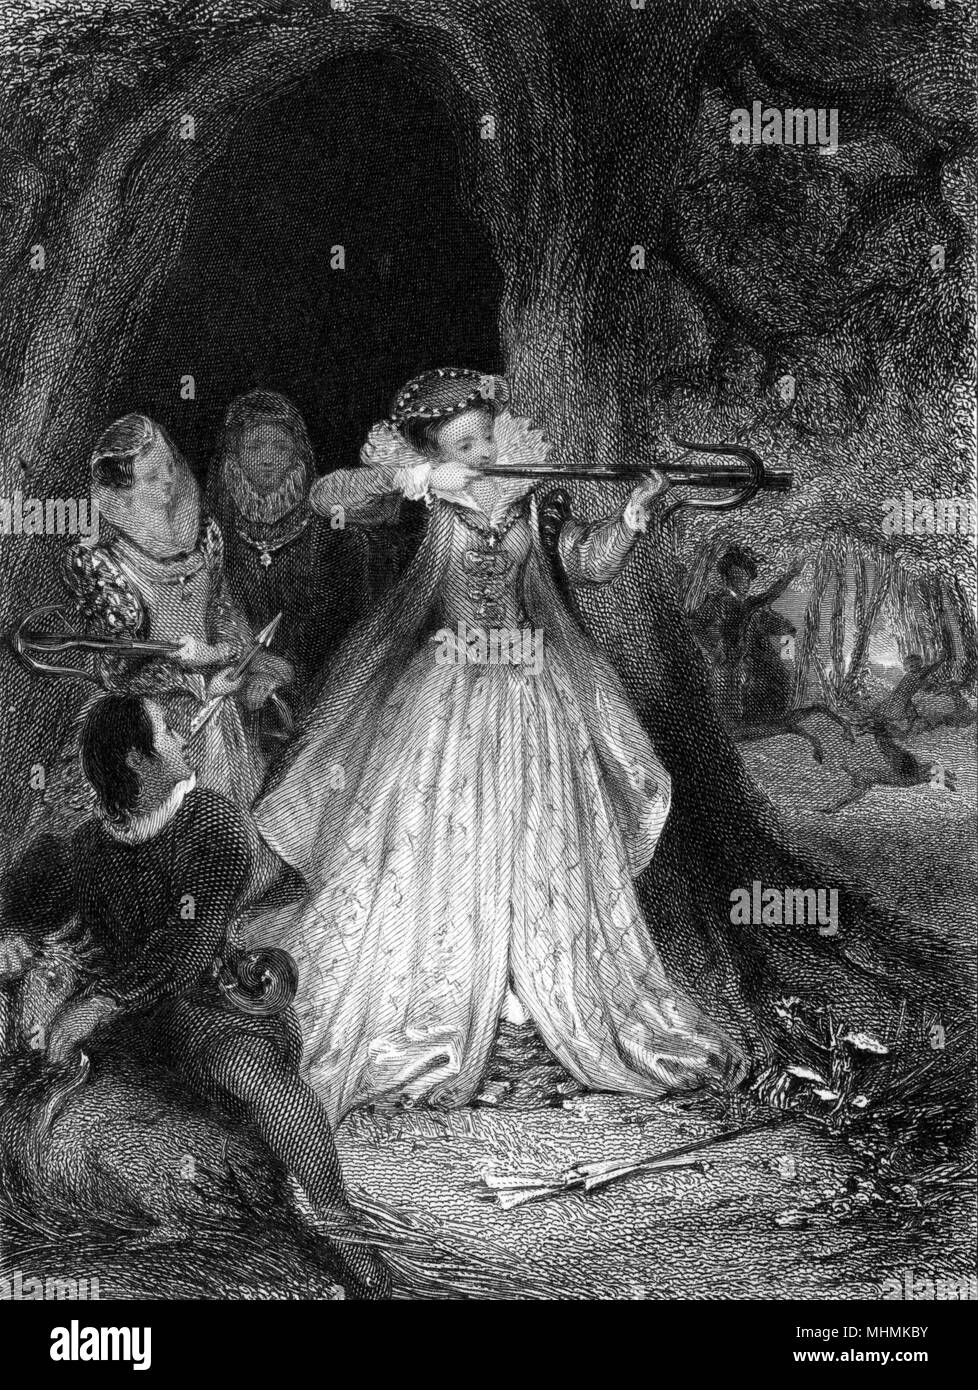 Queen Elizabeth I takes aim with a crossbow in Woodstock Park, while her ladies-in- waiting look on attentively.      Date: circa 1580 - Stock Image